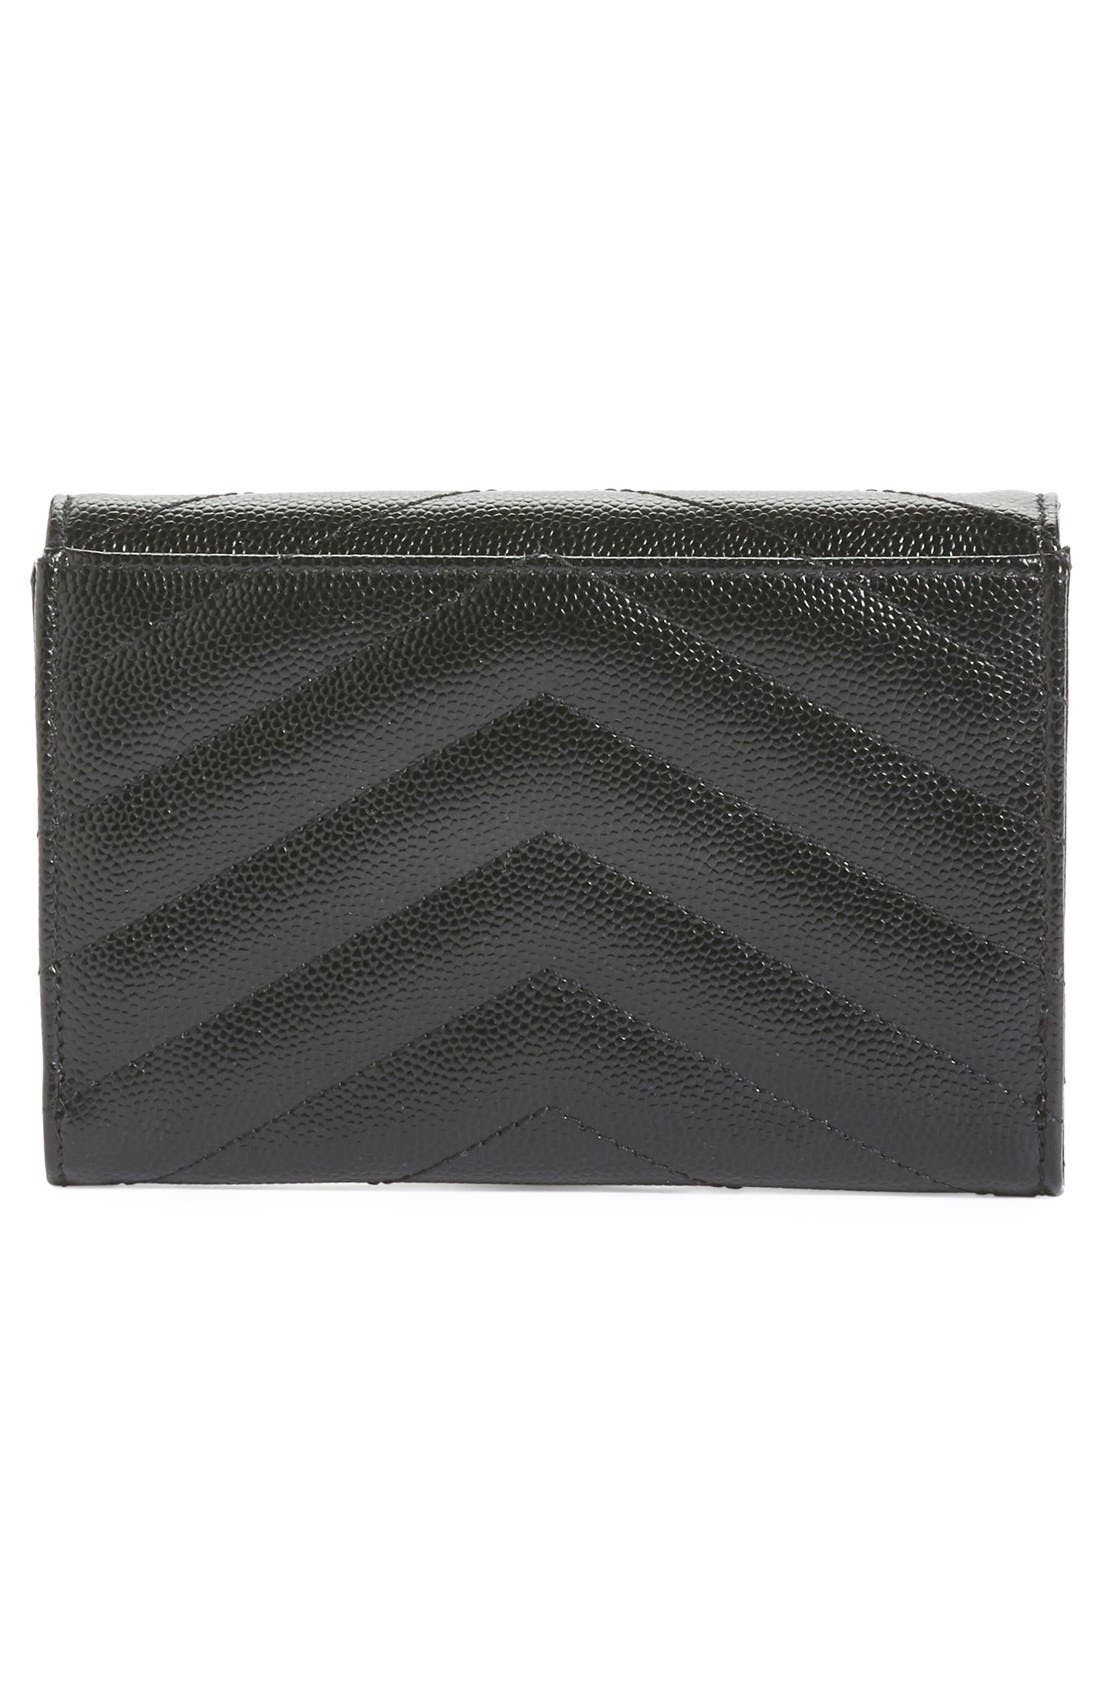 'Monogram' Quilted Leather French Wallet,                             Alternate thumbnail 3, color,                             Noir